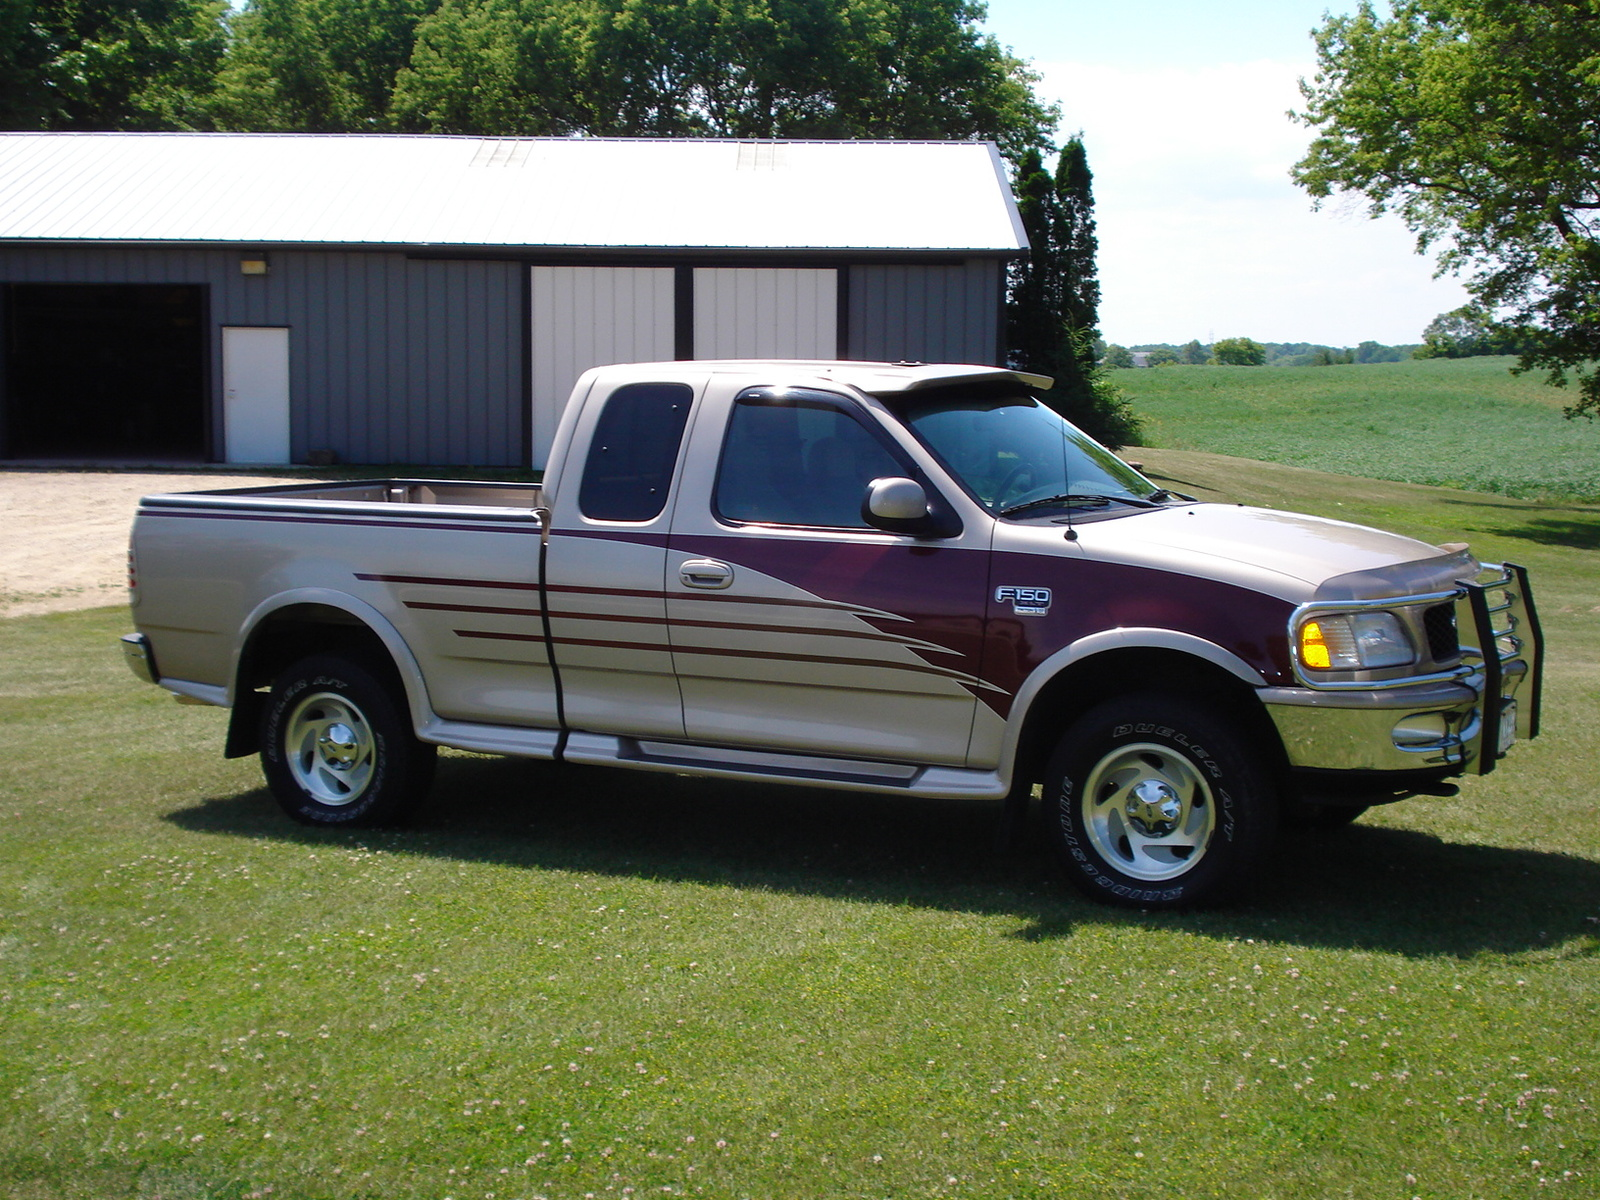 1998 ranger xlt 4x4 extended cab flare autos. Black Bedroom Furniture Sets. Home Design Ideas